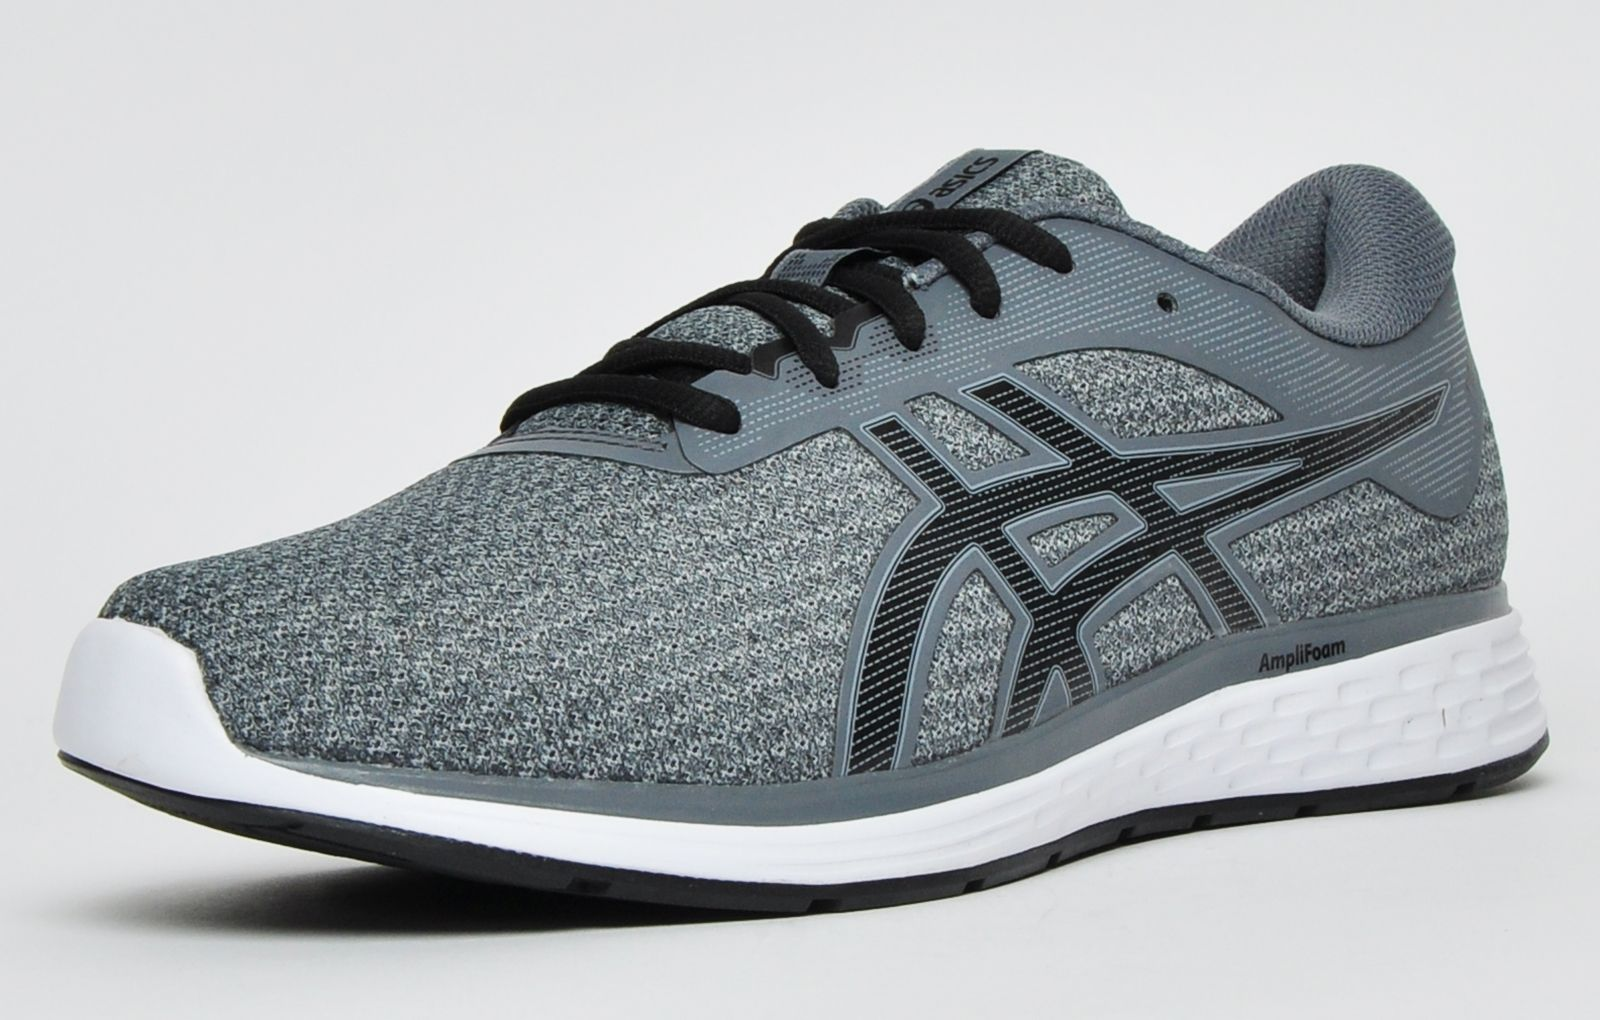 Asics Patriot 11 Mens